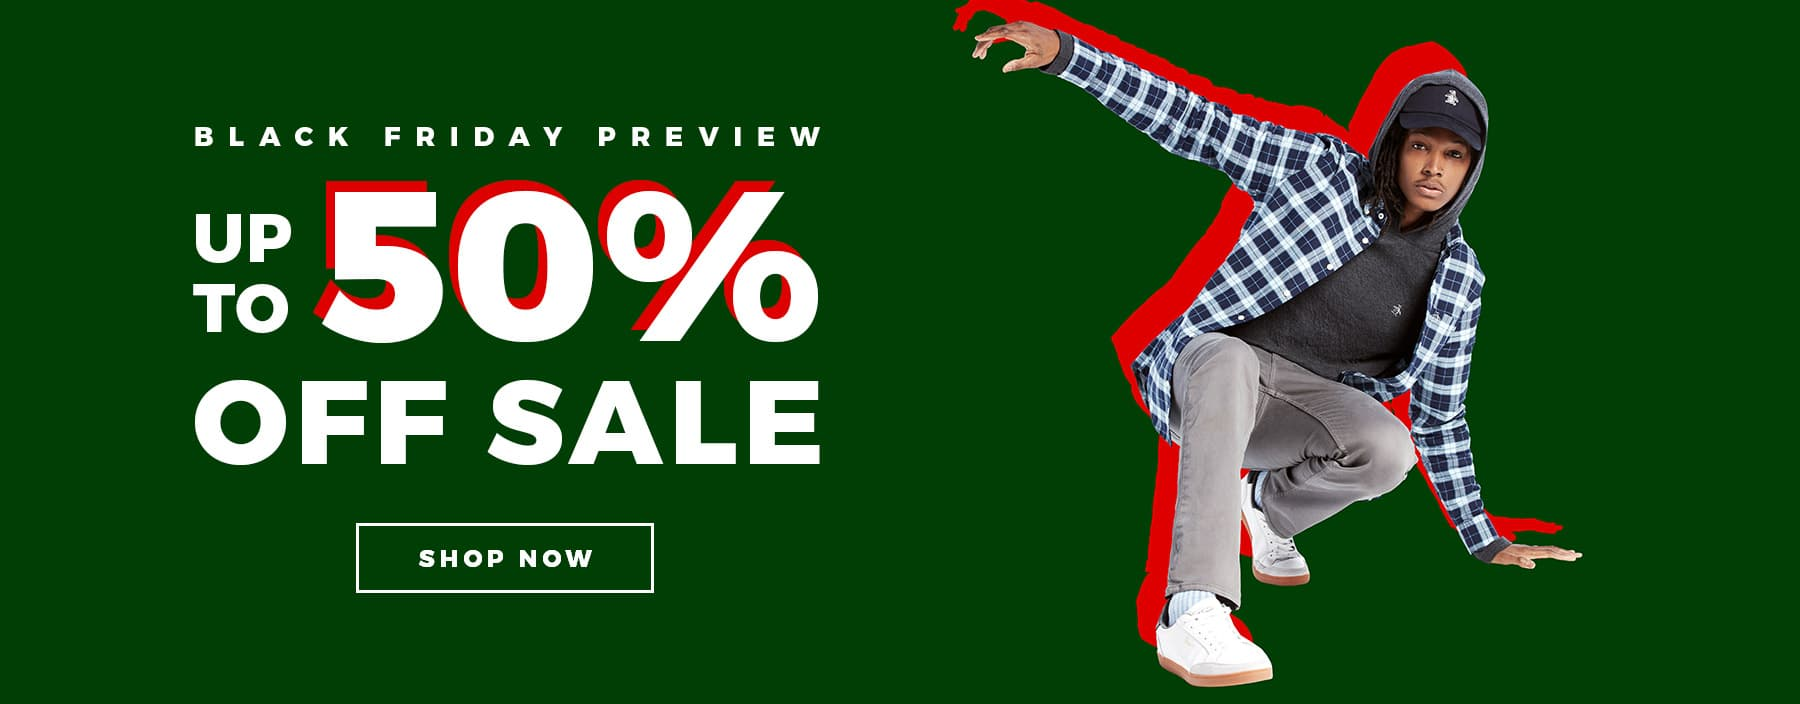 BLACK FRIDAY PREVIEW - UP TO 50% OFF SALE - SHOP NOW